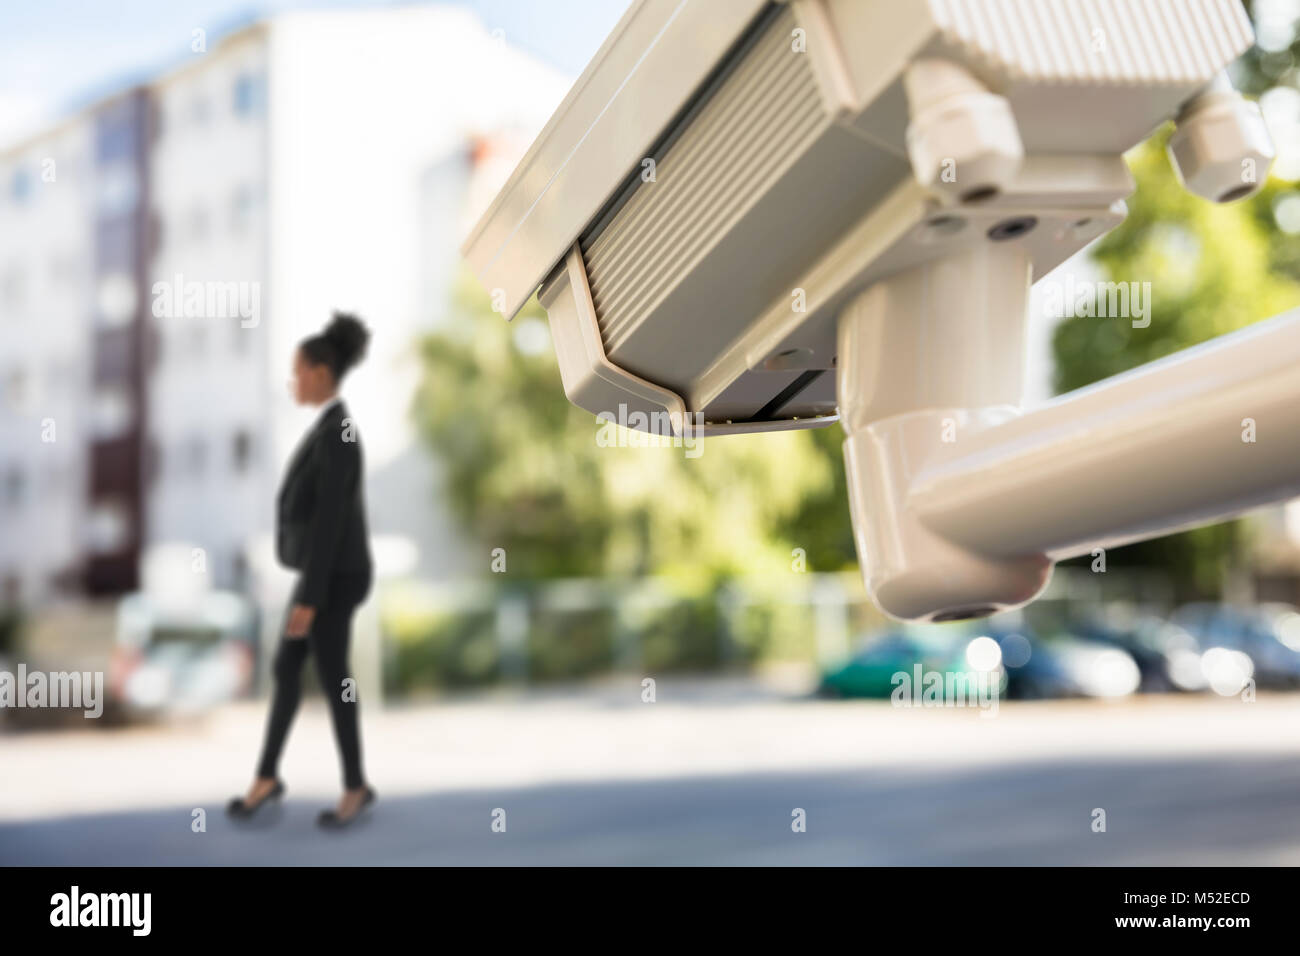 Close-up Photo Of CCTV Monitoring Street Movement - Stock Image